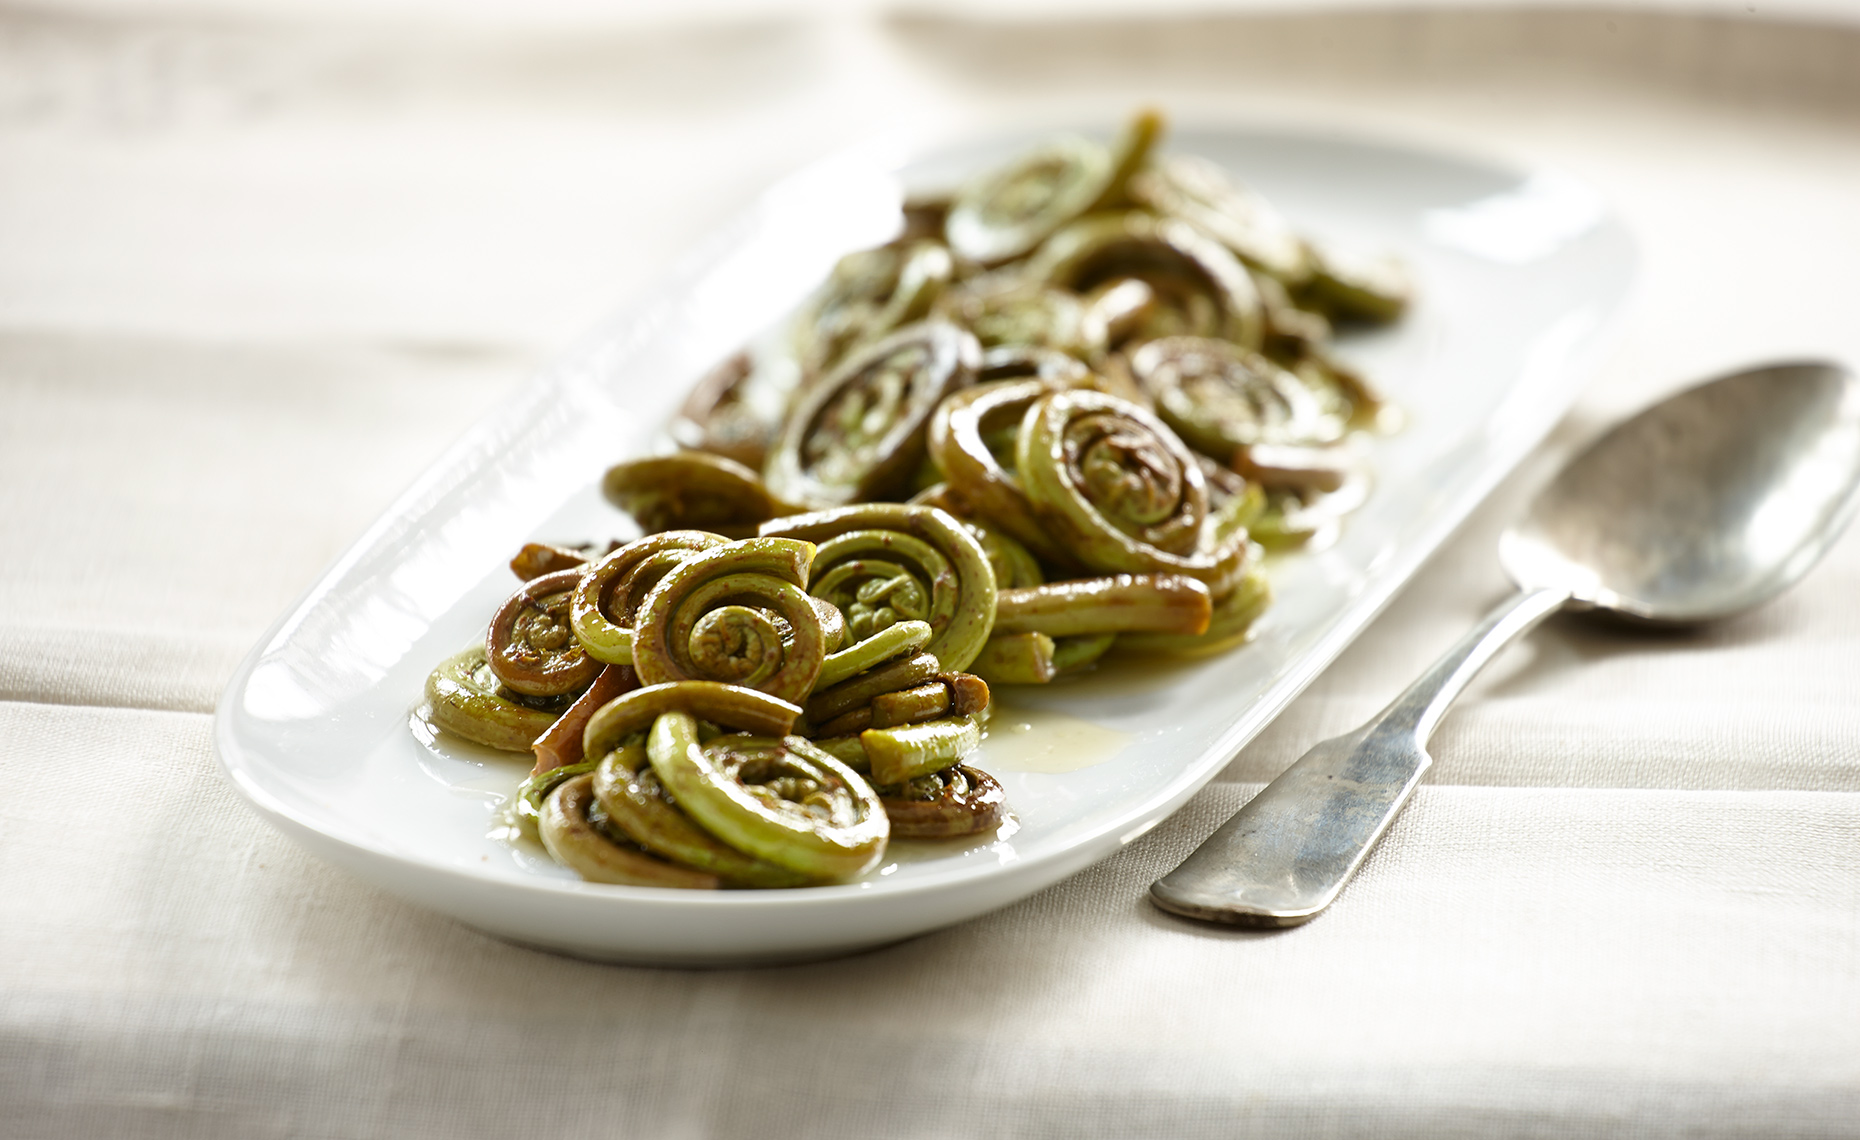 Food Photographer, Vegetable photography, Fruit photography | Pohuski Studios,  Sauteed Fiddleheads